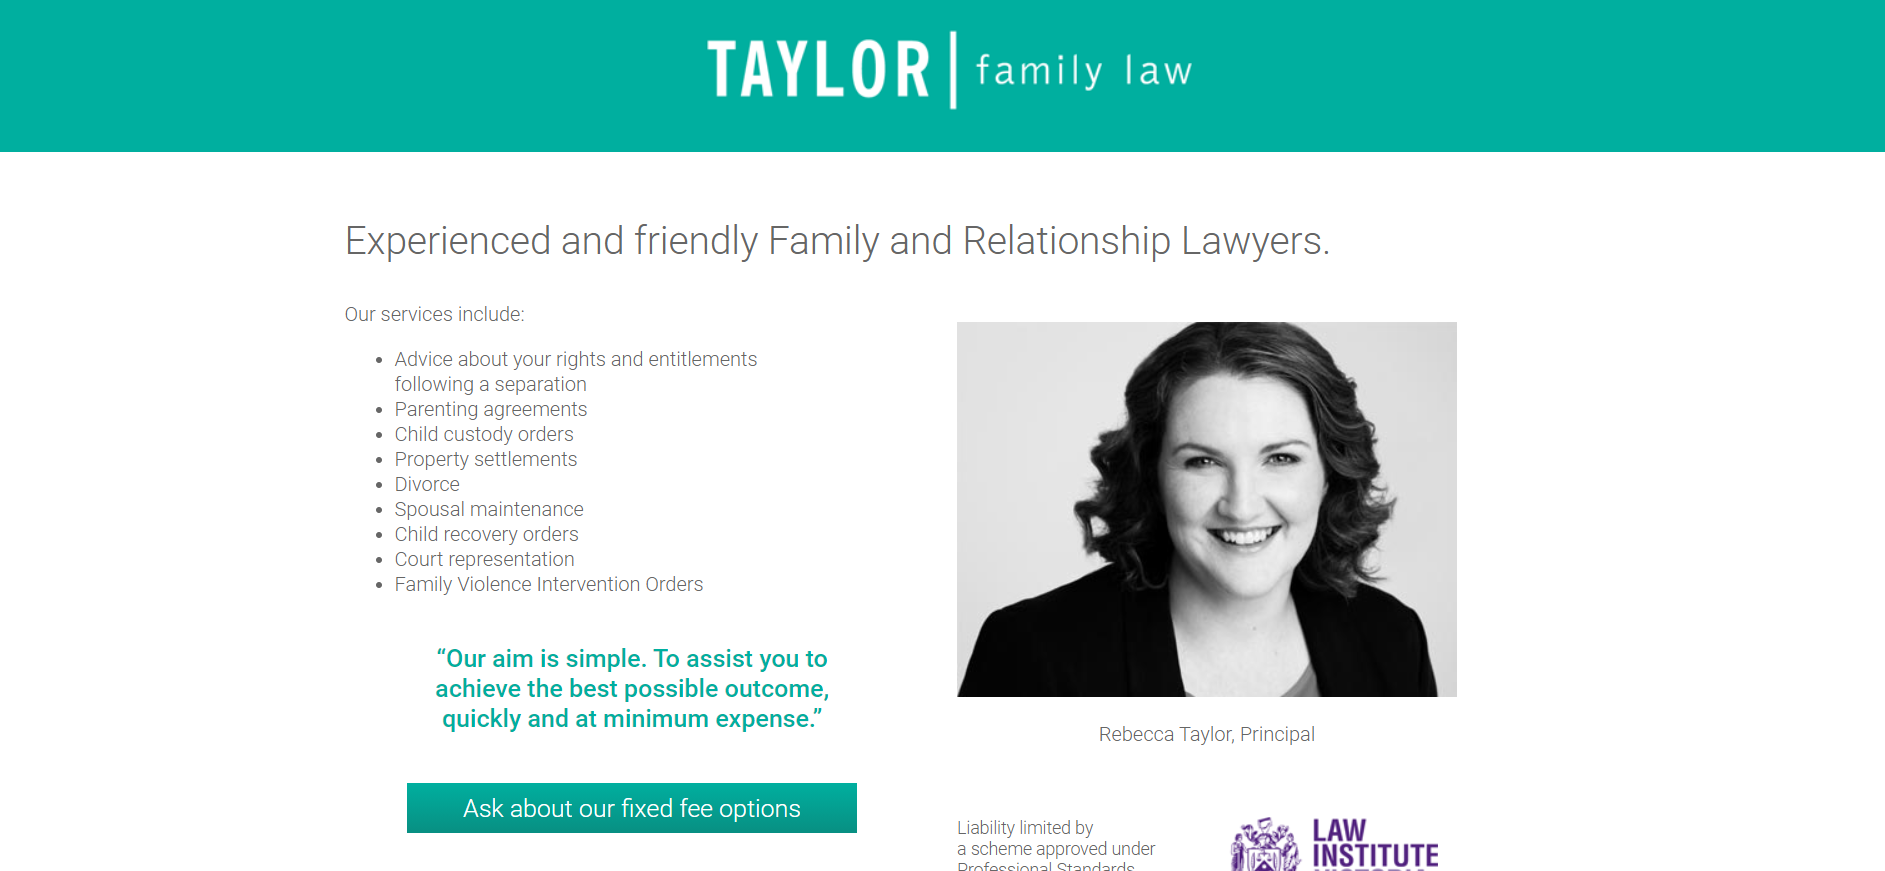 Taylor Family Law